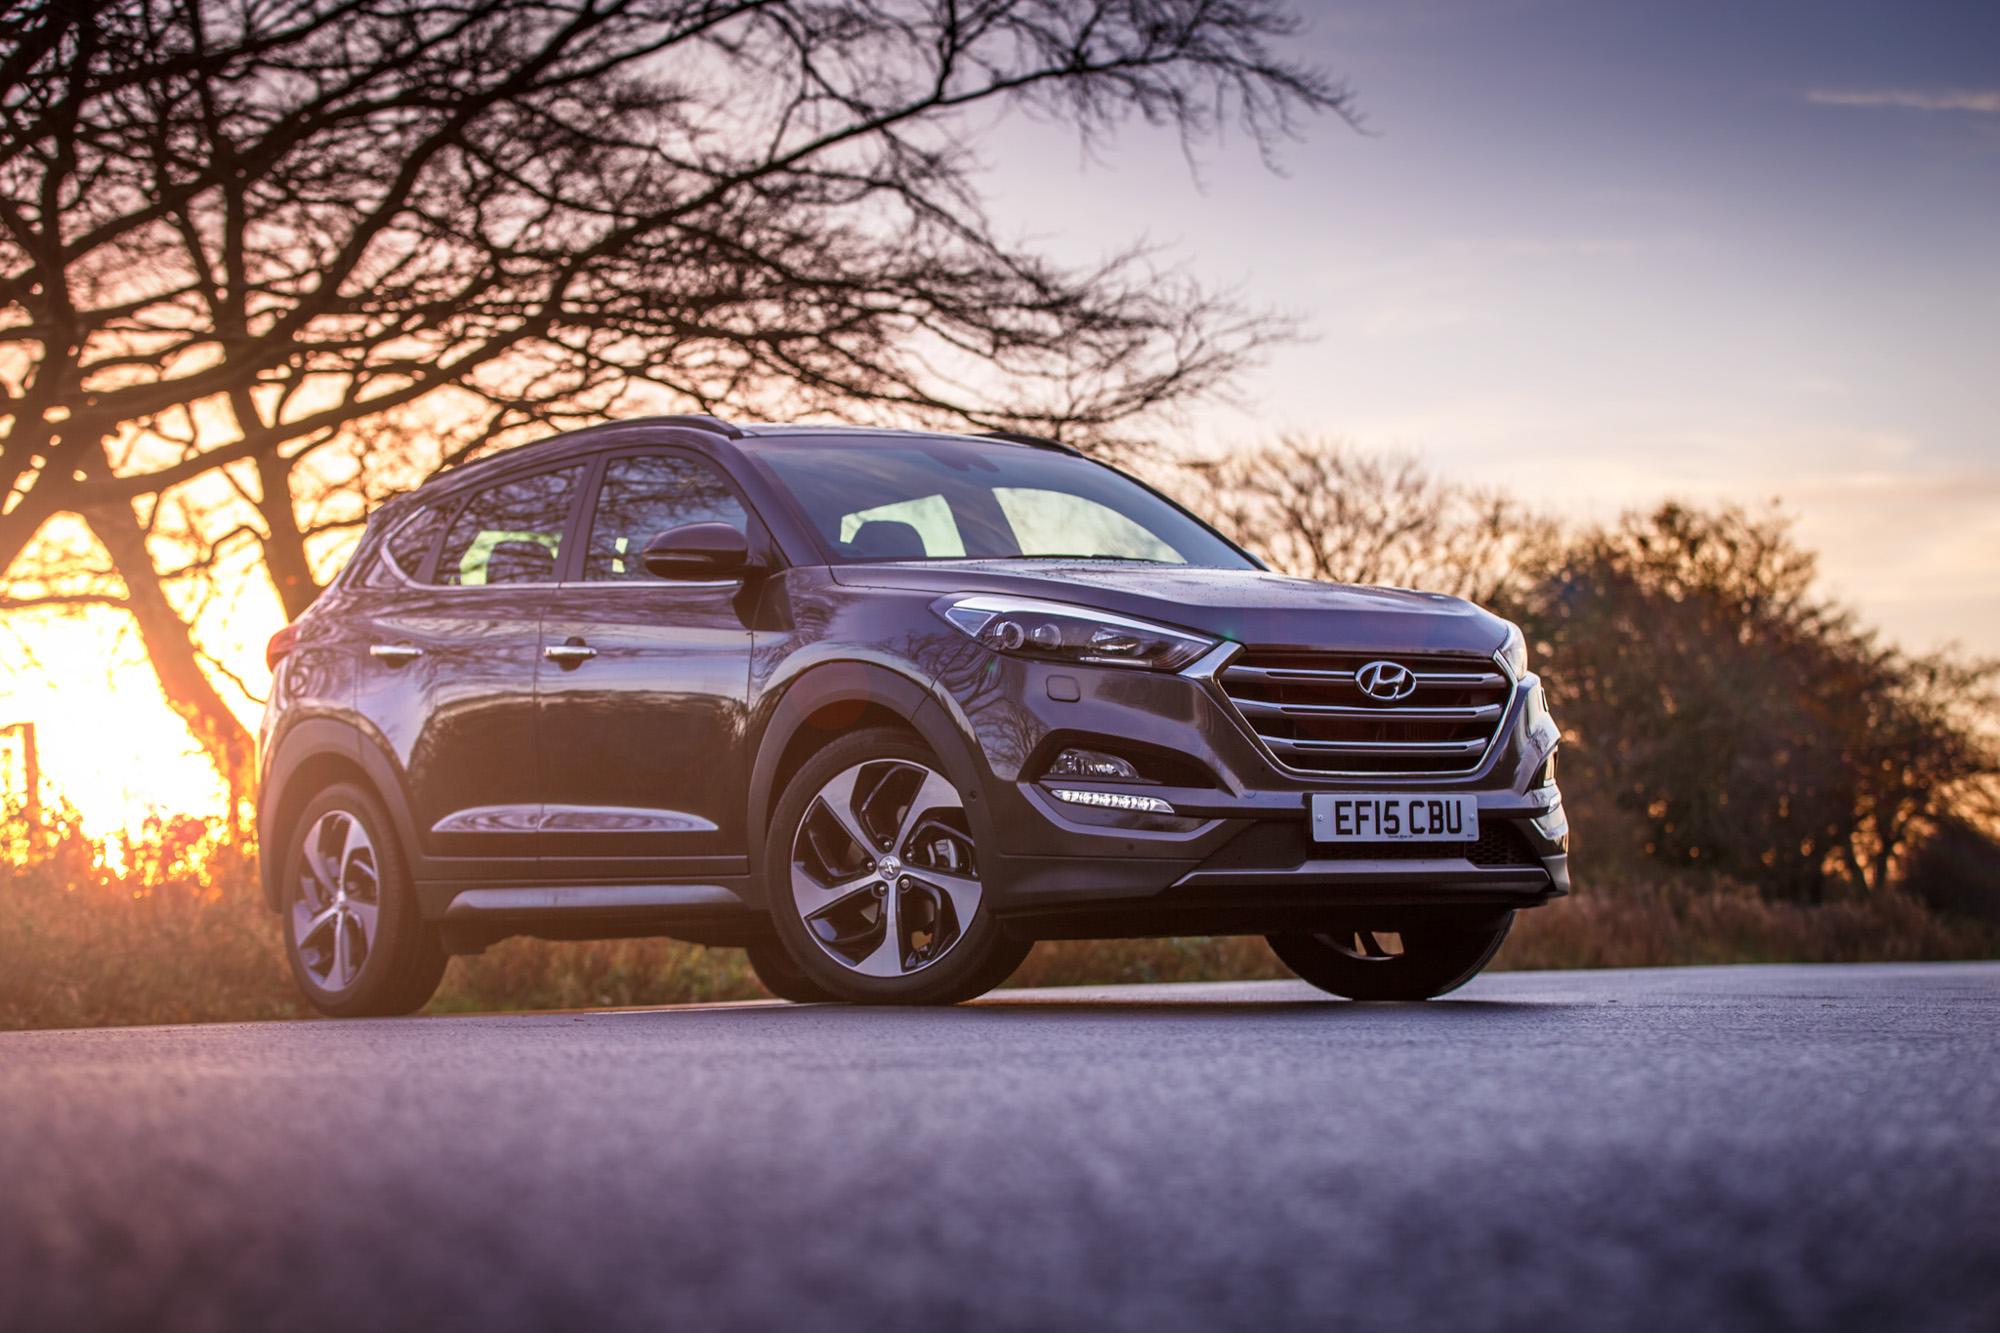 2016 Hyundai Santa Fe Se >> Hyundai Tucson Premium SE 2015 Review - Here is All the Car You Need